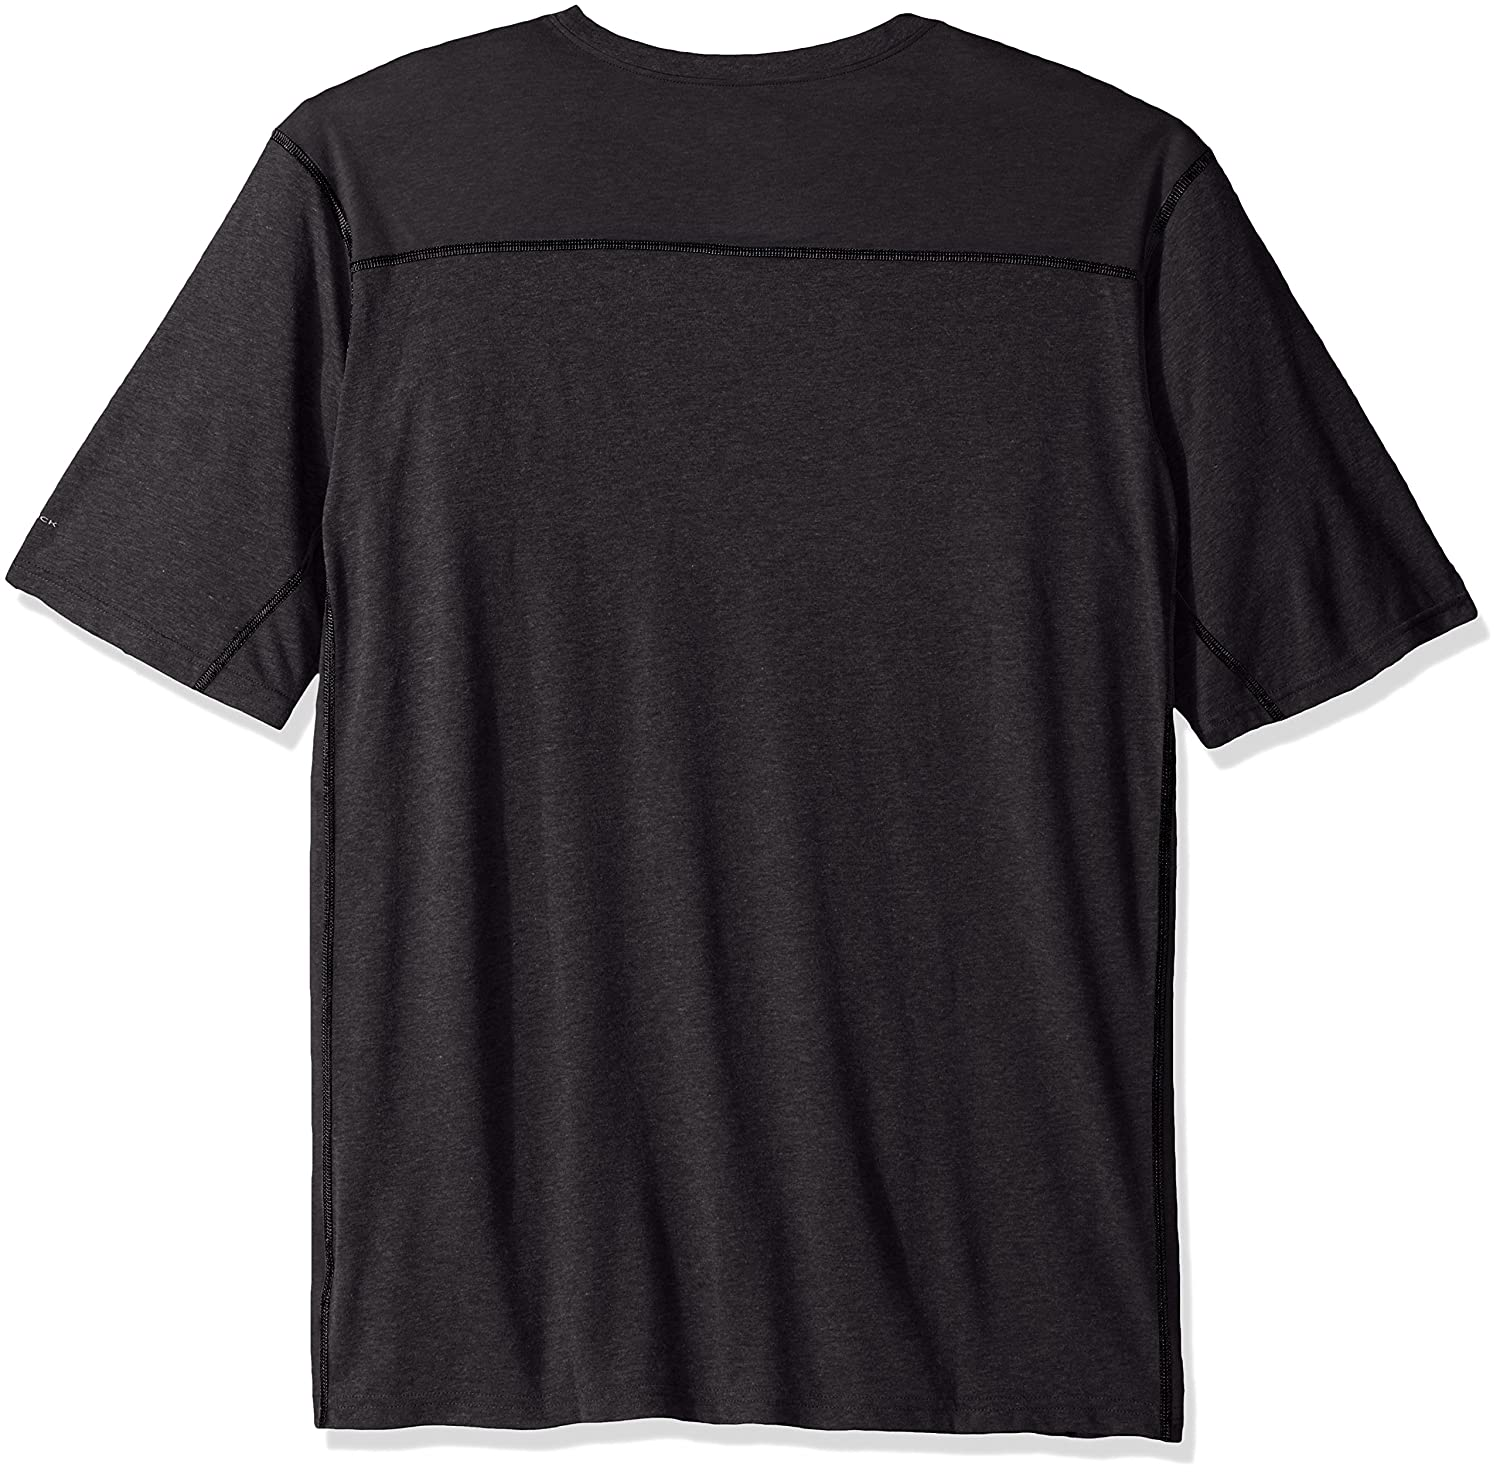 ecf893f6759 Amazon.com: Columbia Men's Silver Ridge Big & Tall Short Sleeve Tee:  Clothing